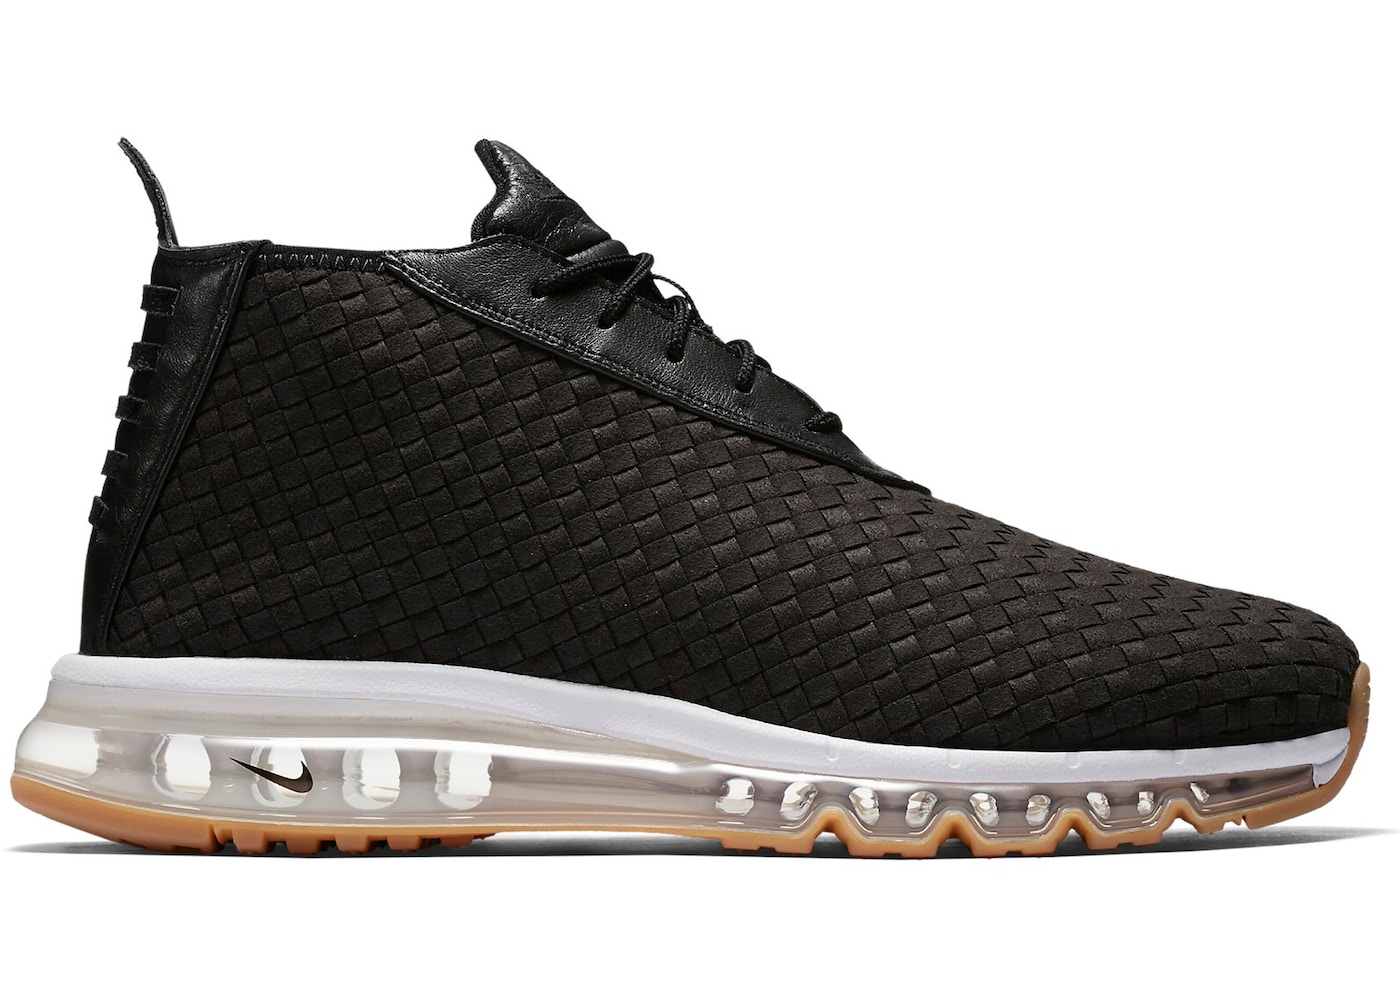 53c1be132d Air Max Woven Boot Black Gum - 921854-003